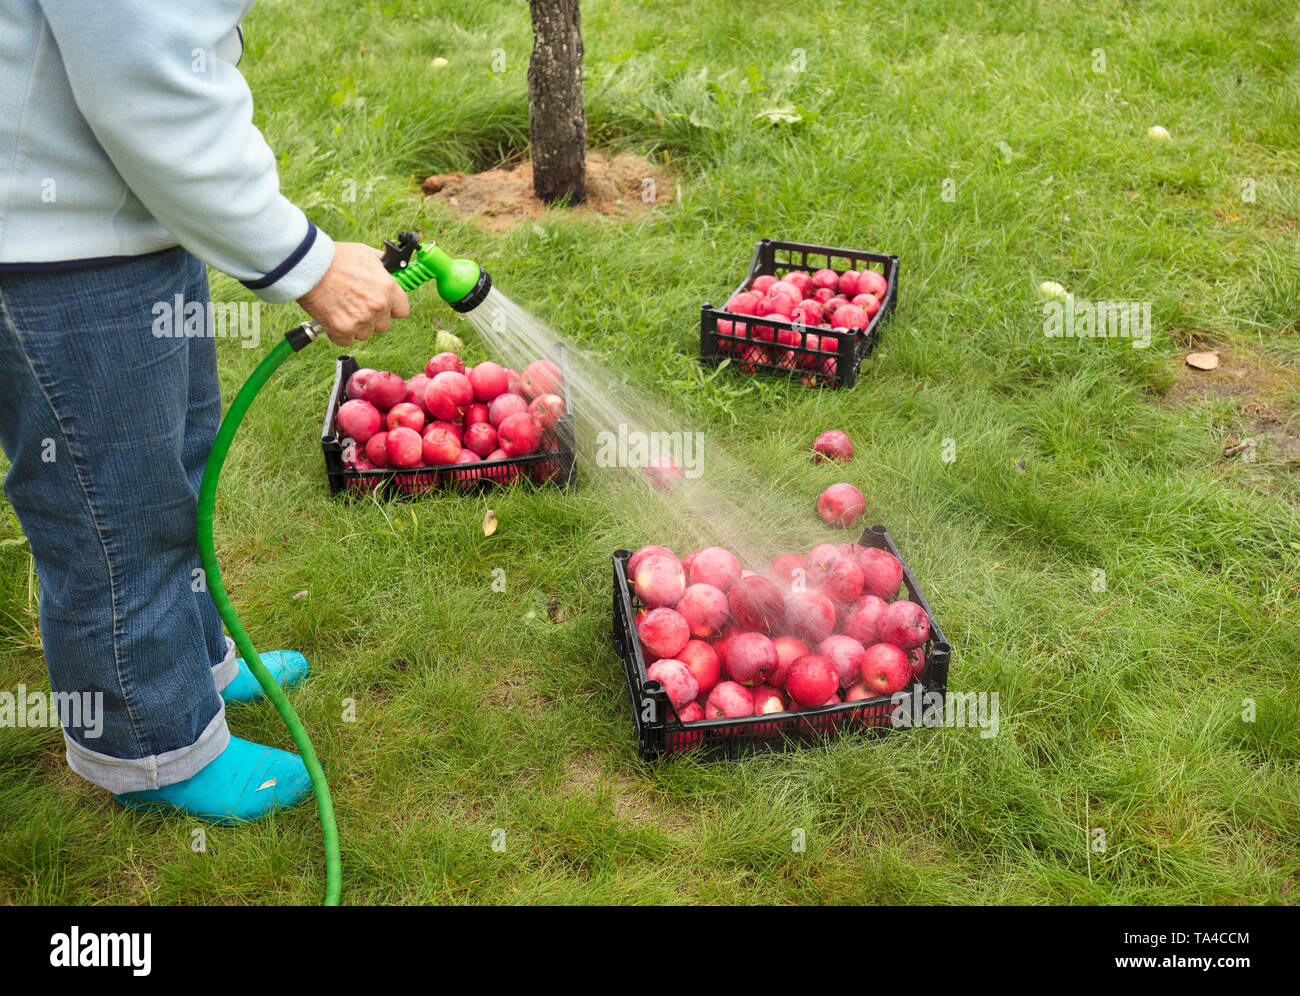 The farmer washes from the sprayer a harvest of red ripe apples collected in plastic baskets and lying in a dense green grass - Stock Image